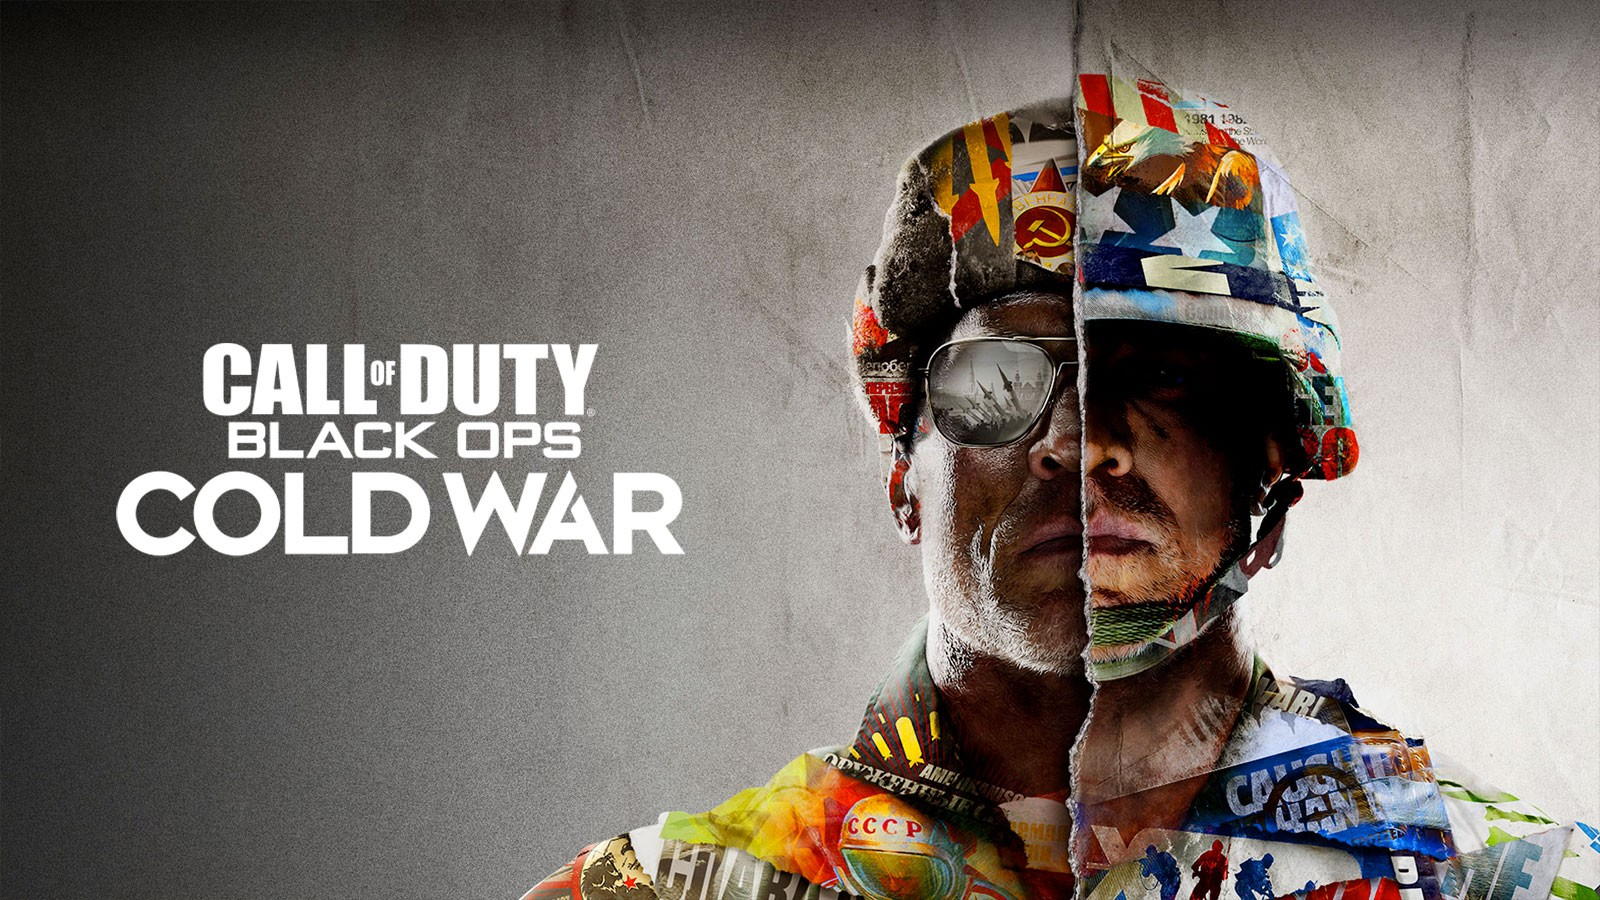 Call of Duty: Cold War Hacks and Cheats